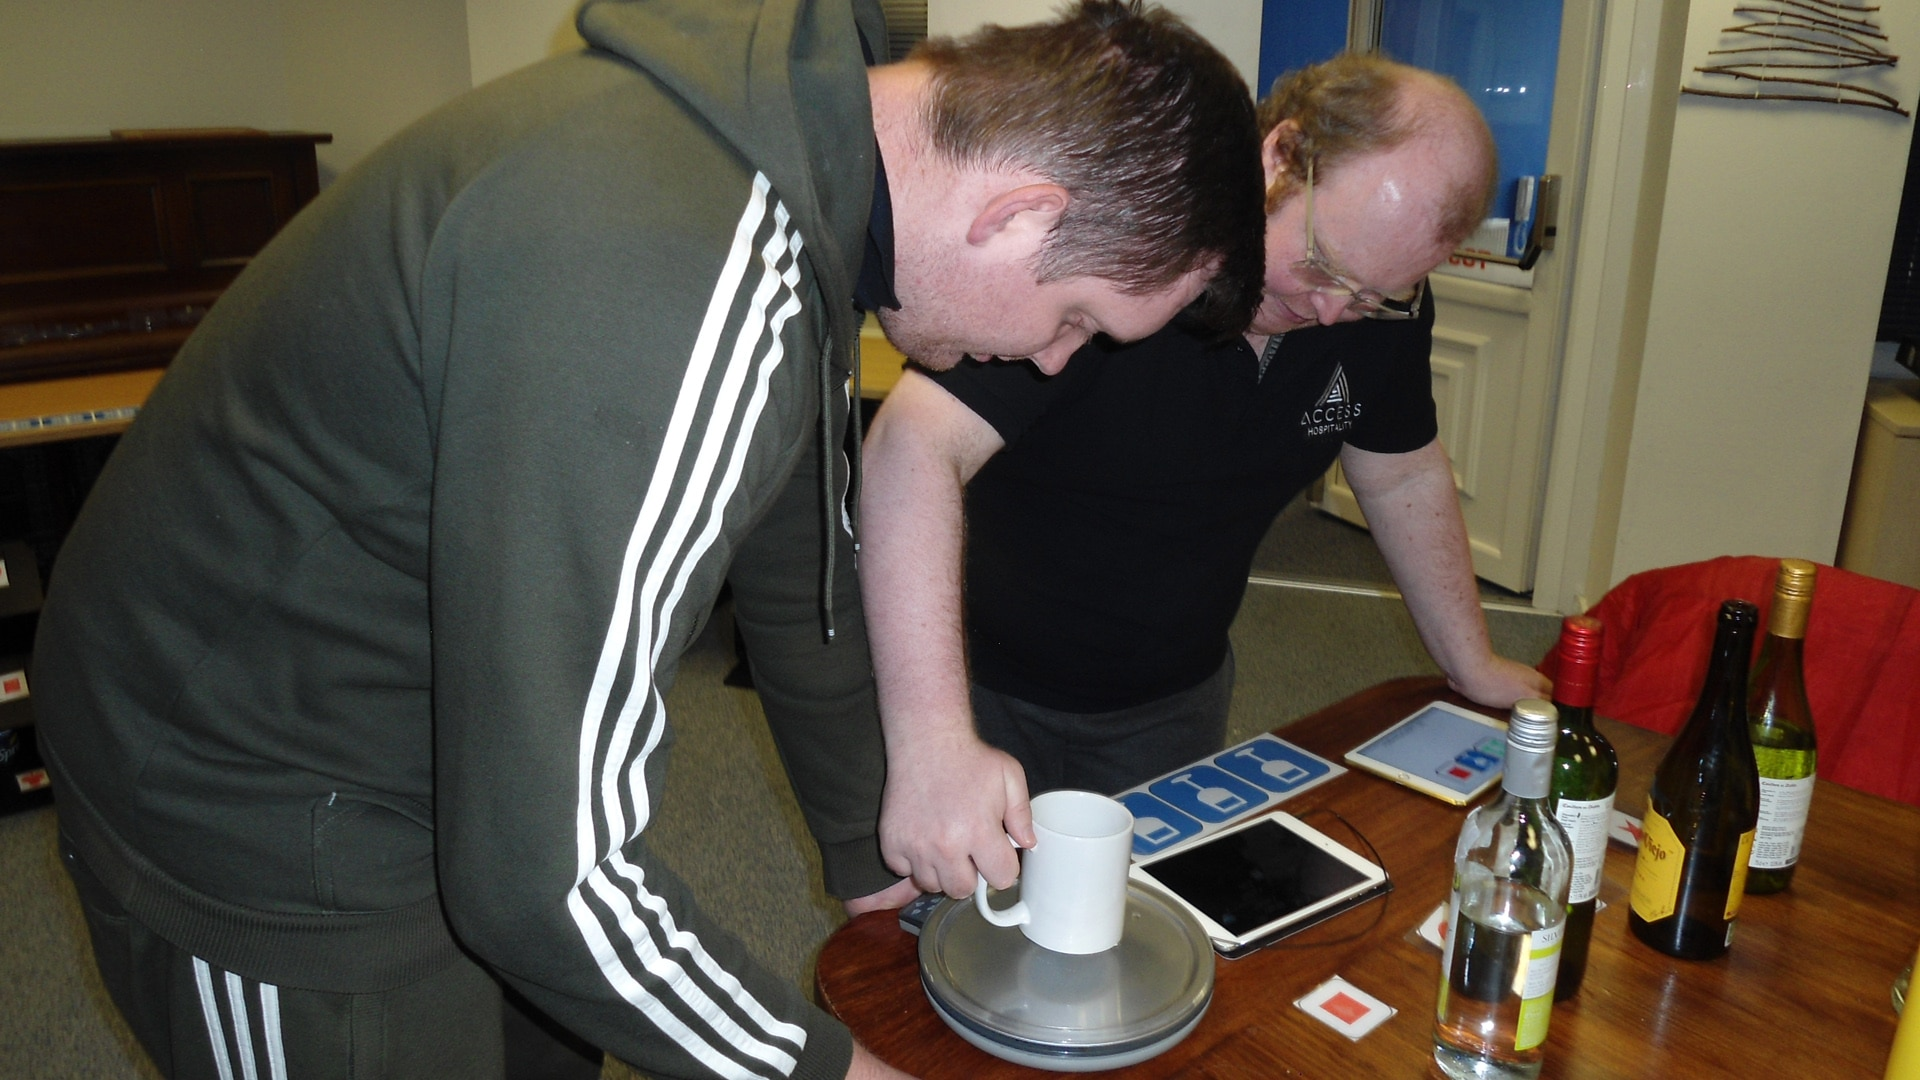 Magpies member holding a mug on a set of scales with bottles of wine, learning about drinks measurements